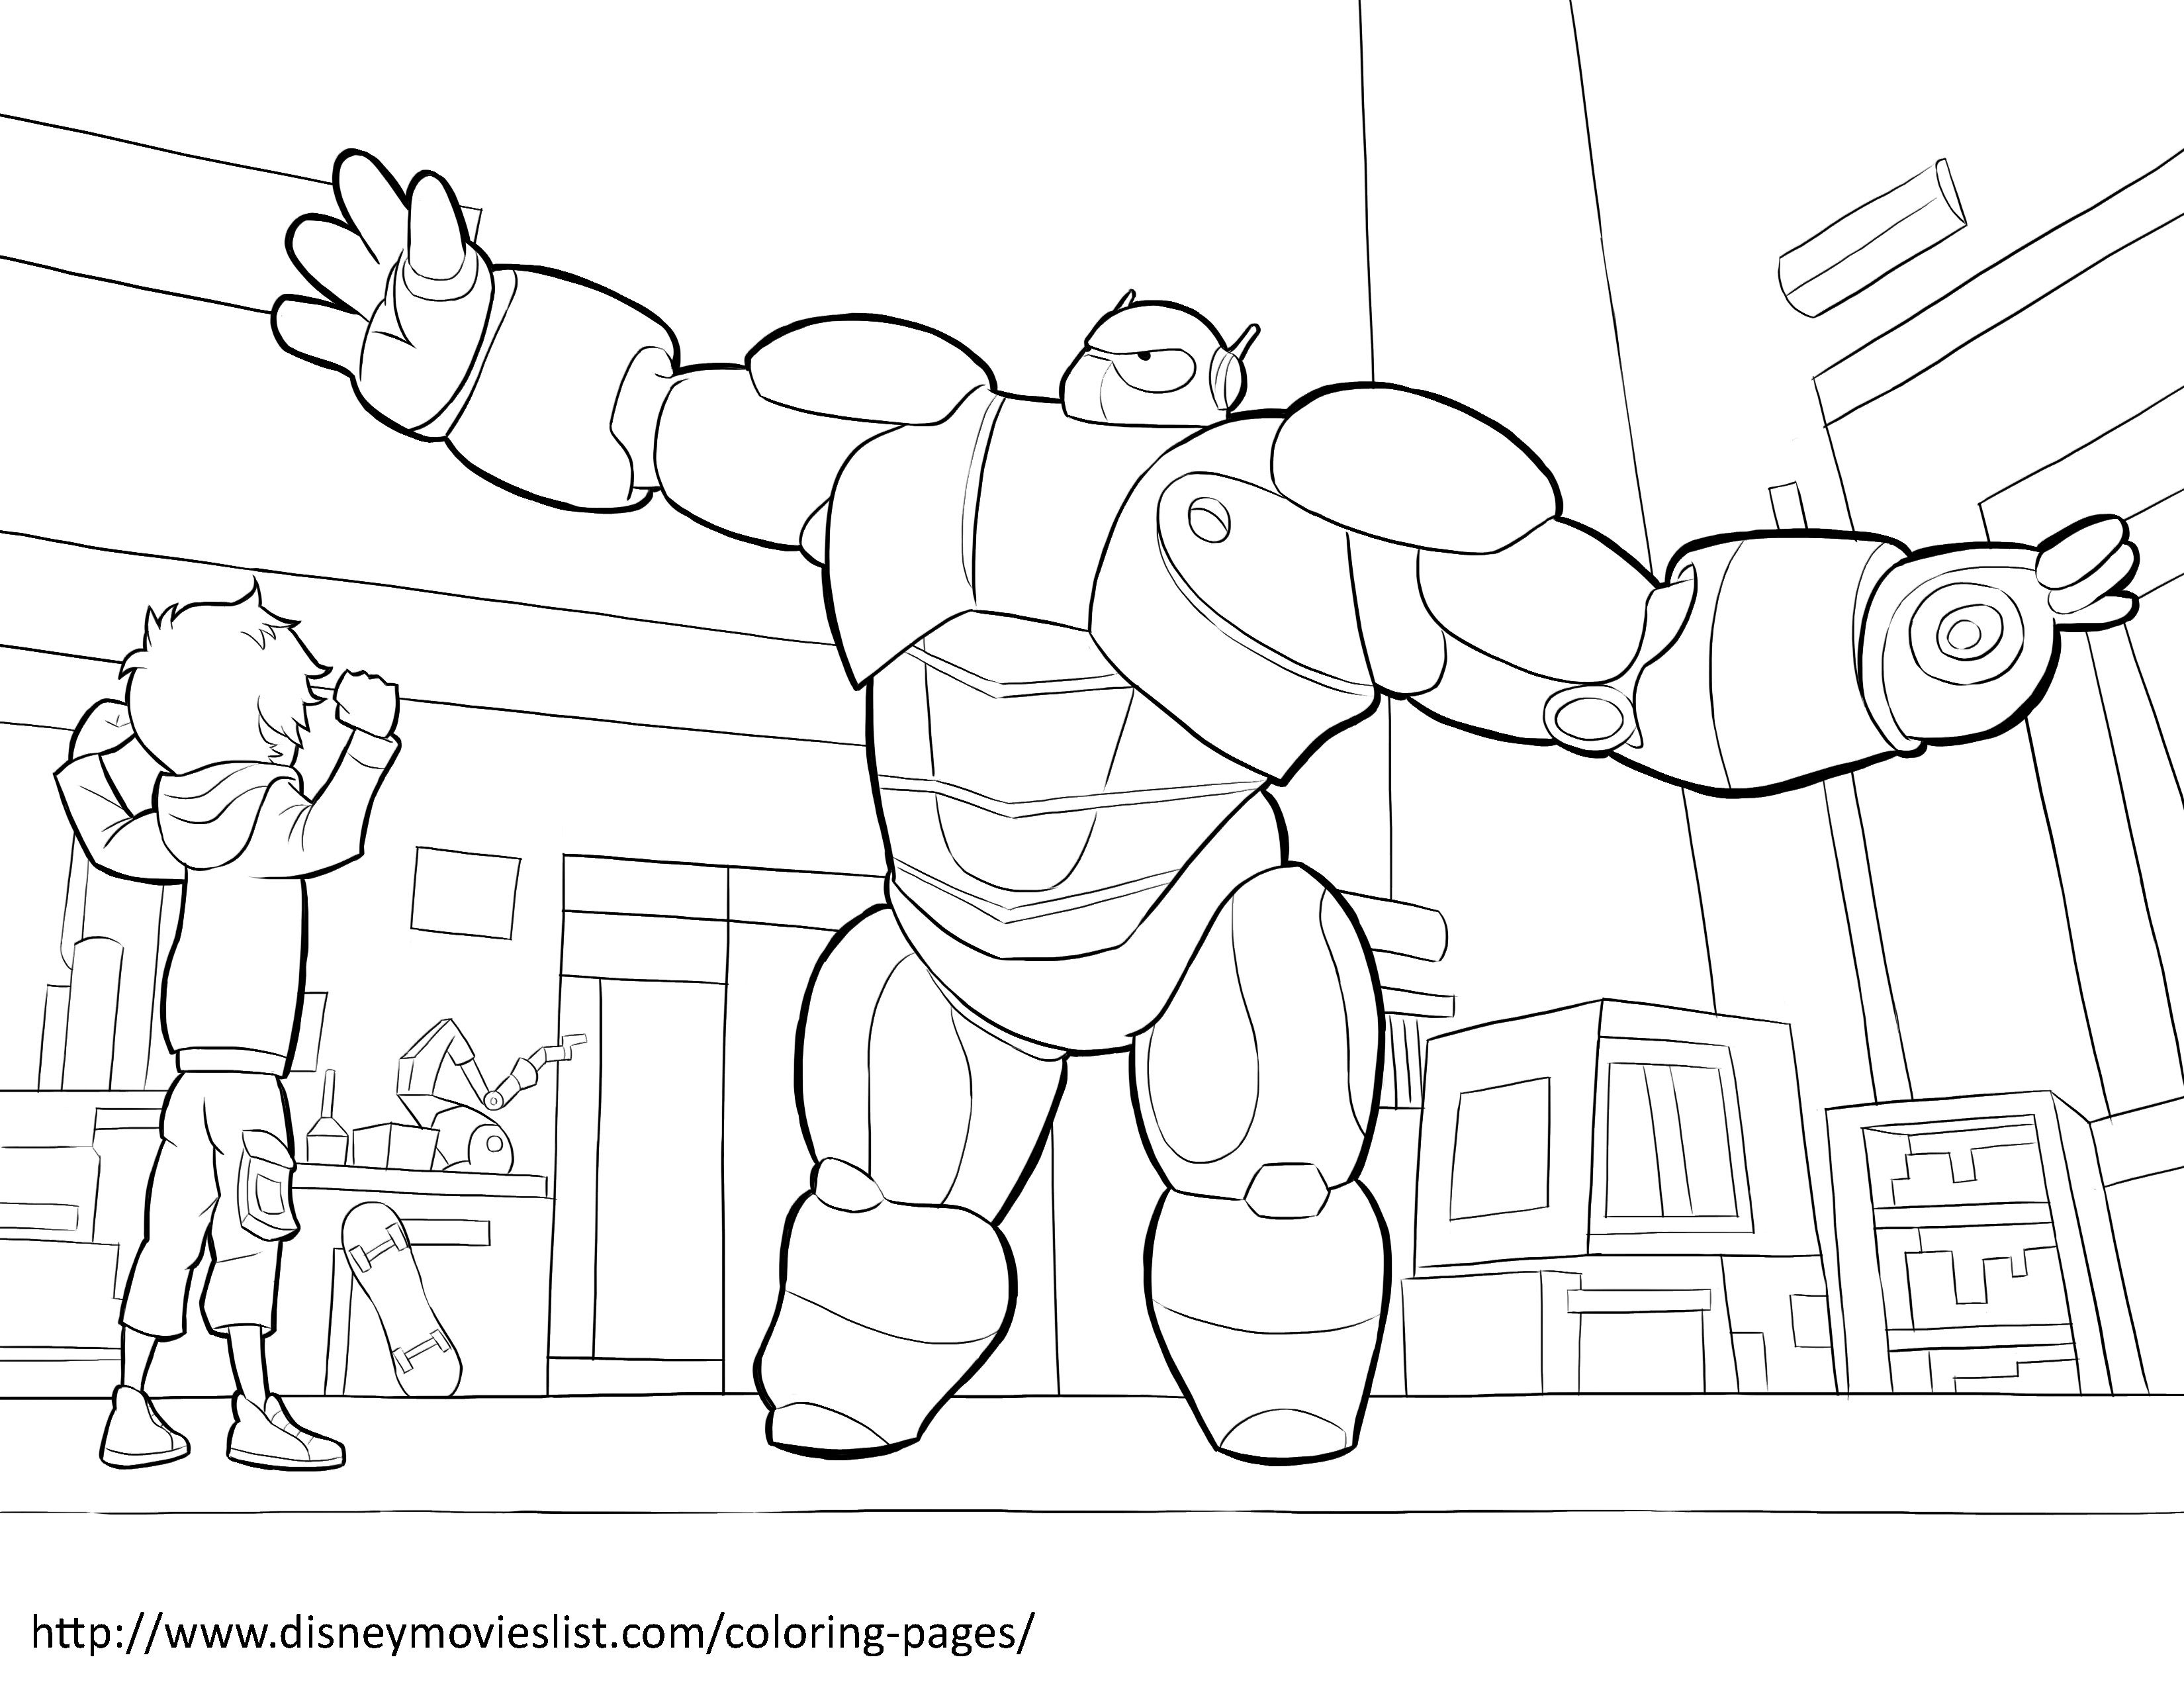 Big Hero 6 Coloring Pages | Disneyclips.com | 2550x3300